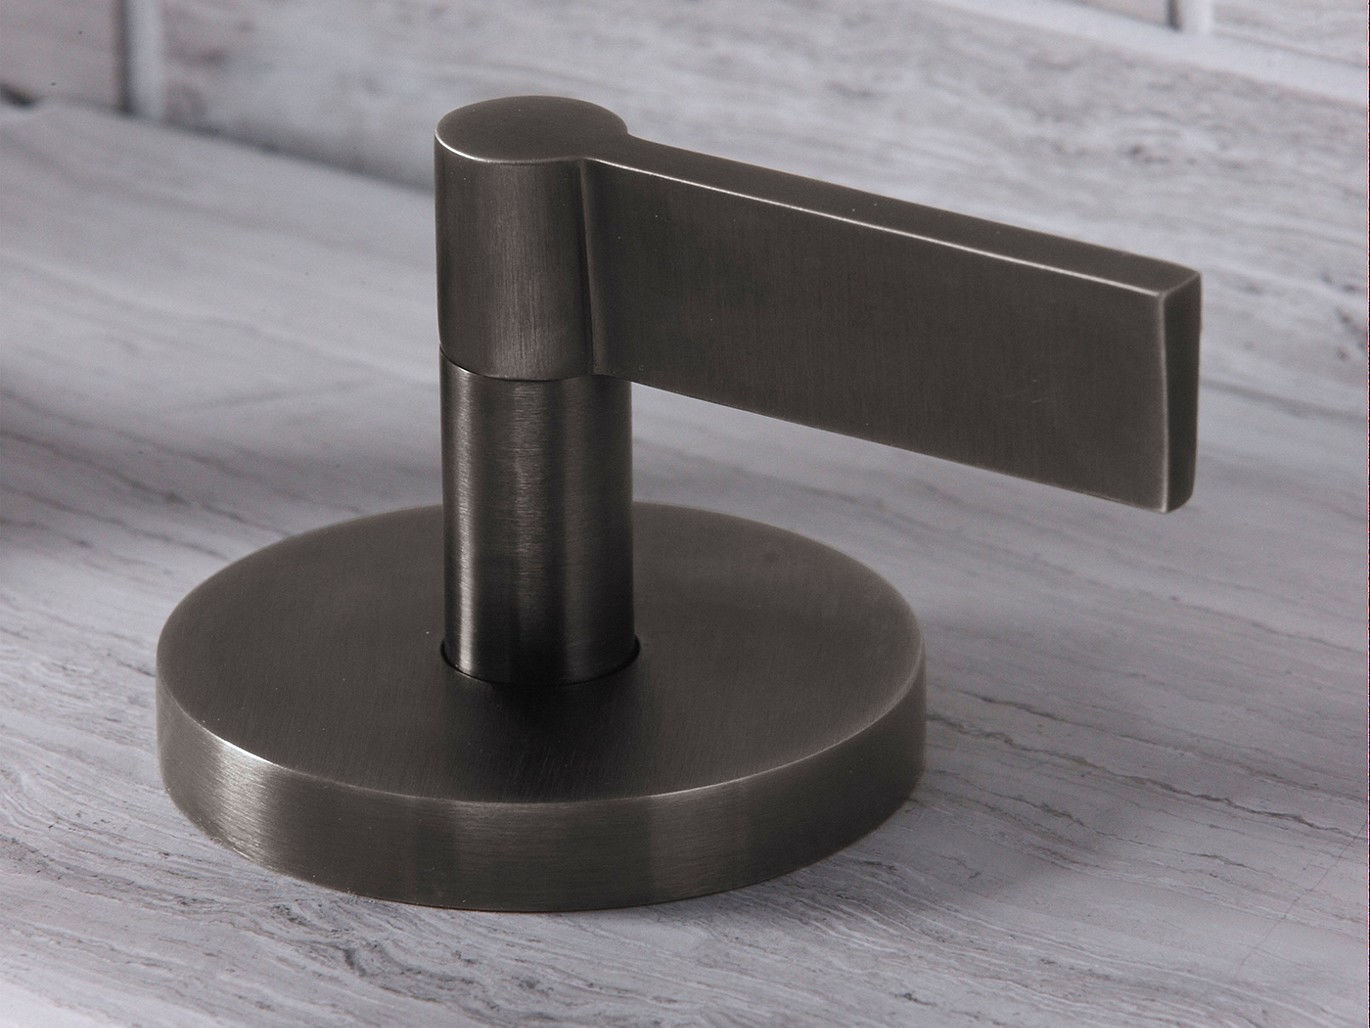 Kallista P24425-LV-CP Polished Chrome One Wall Mounted Double Lever ...